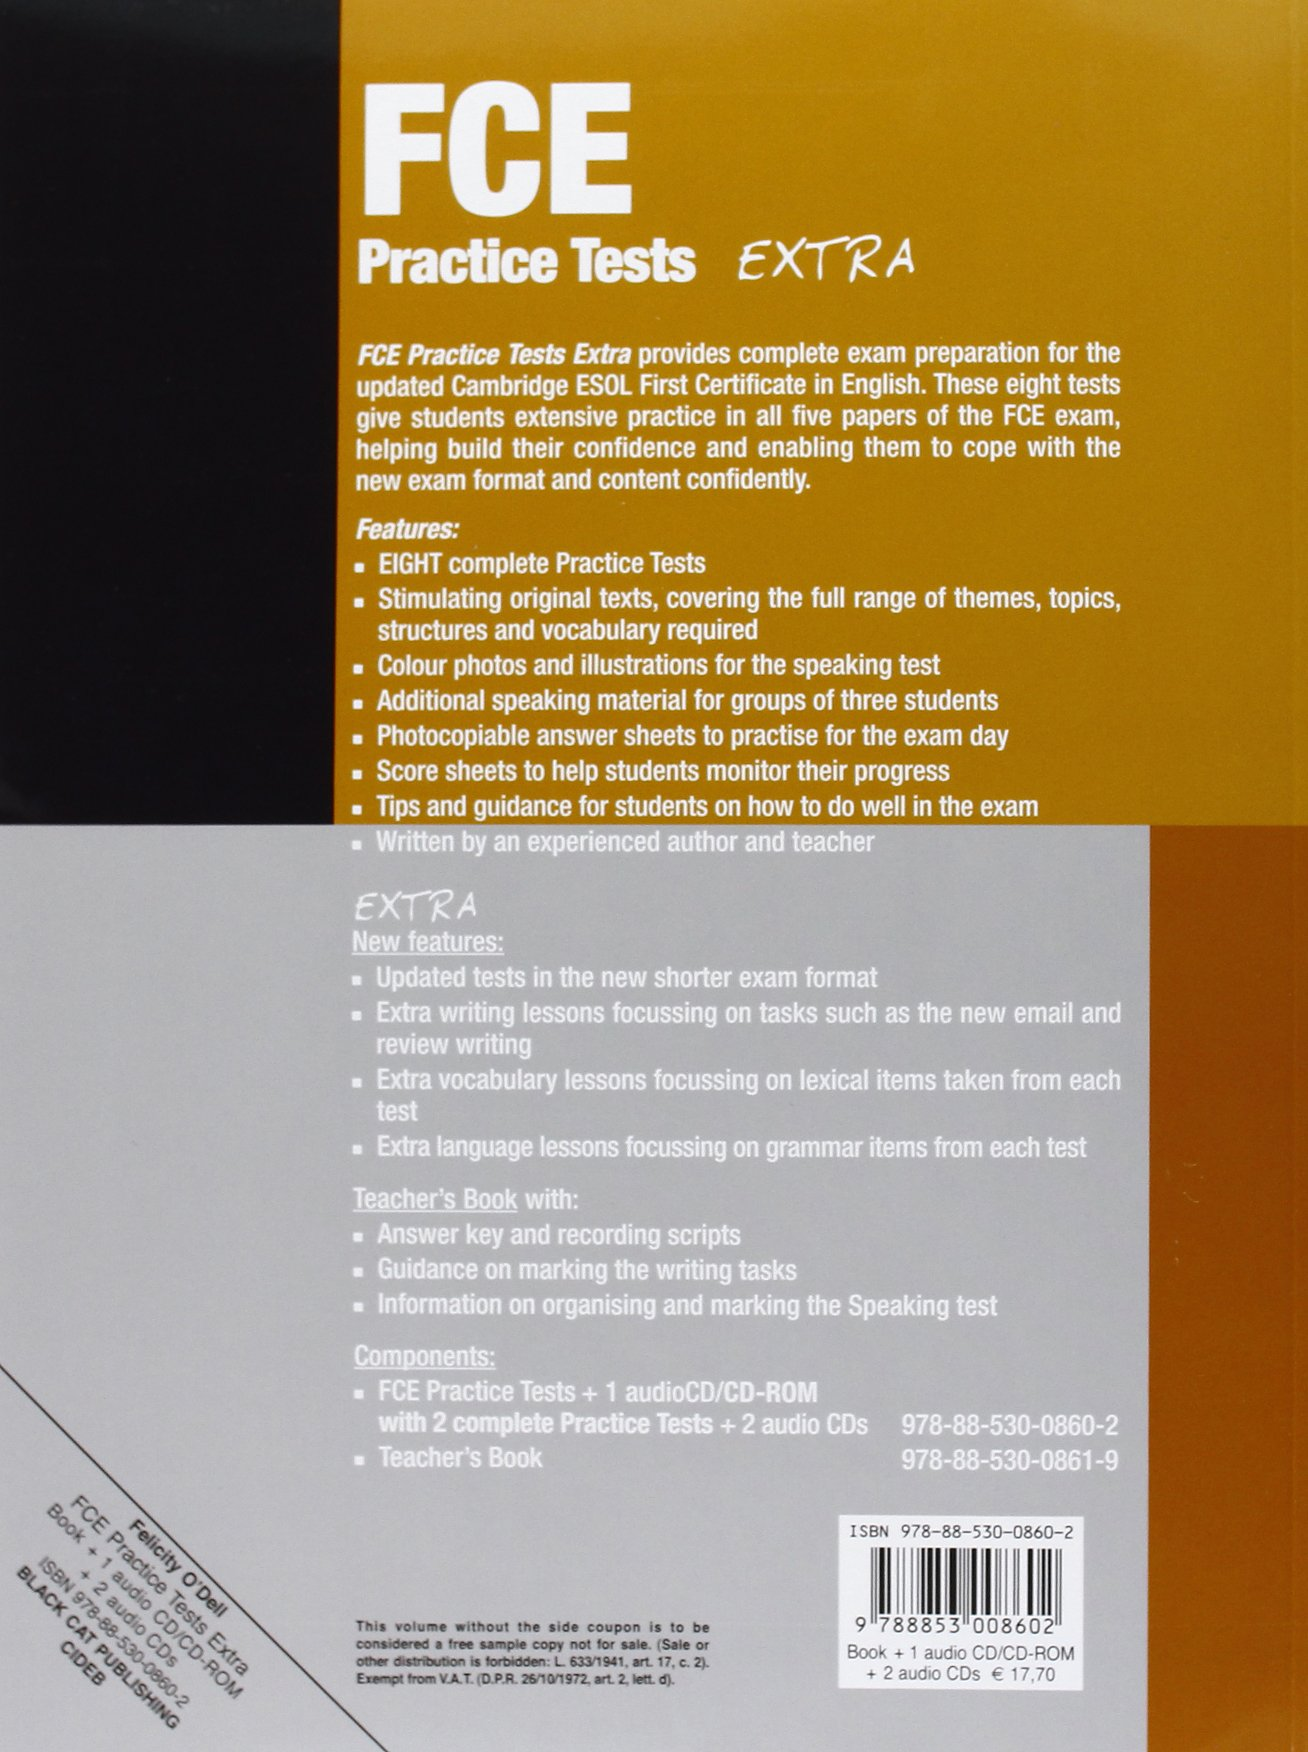 Fce practice tests extra eight practice tests for the cambridge esol first certificate in english with cdrom and cd audio felicity o dell